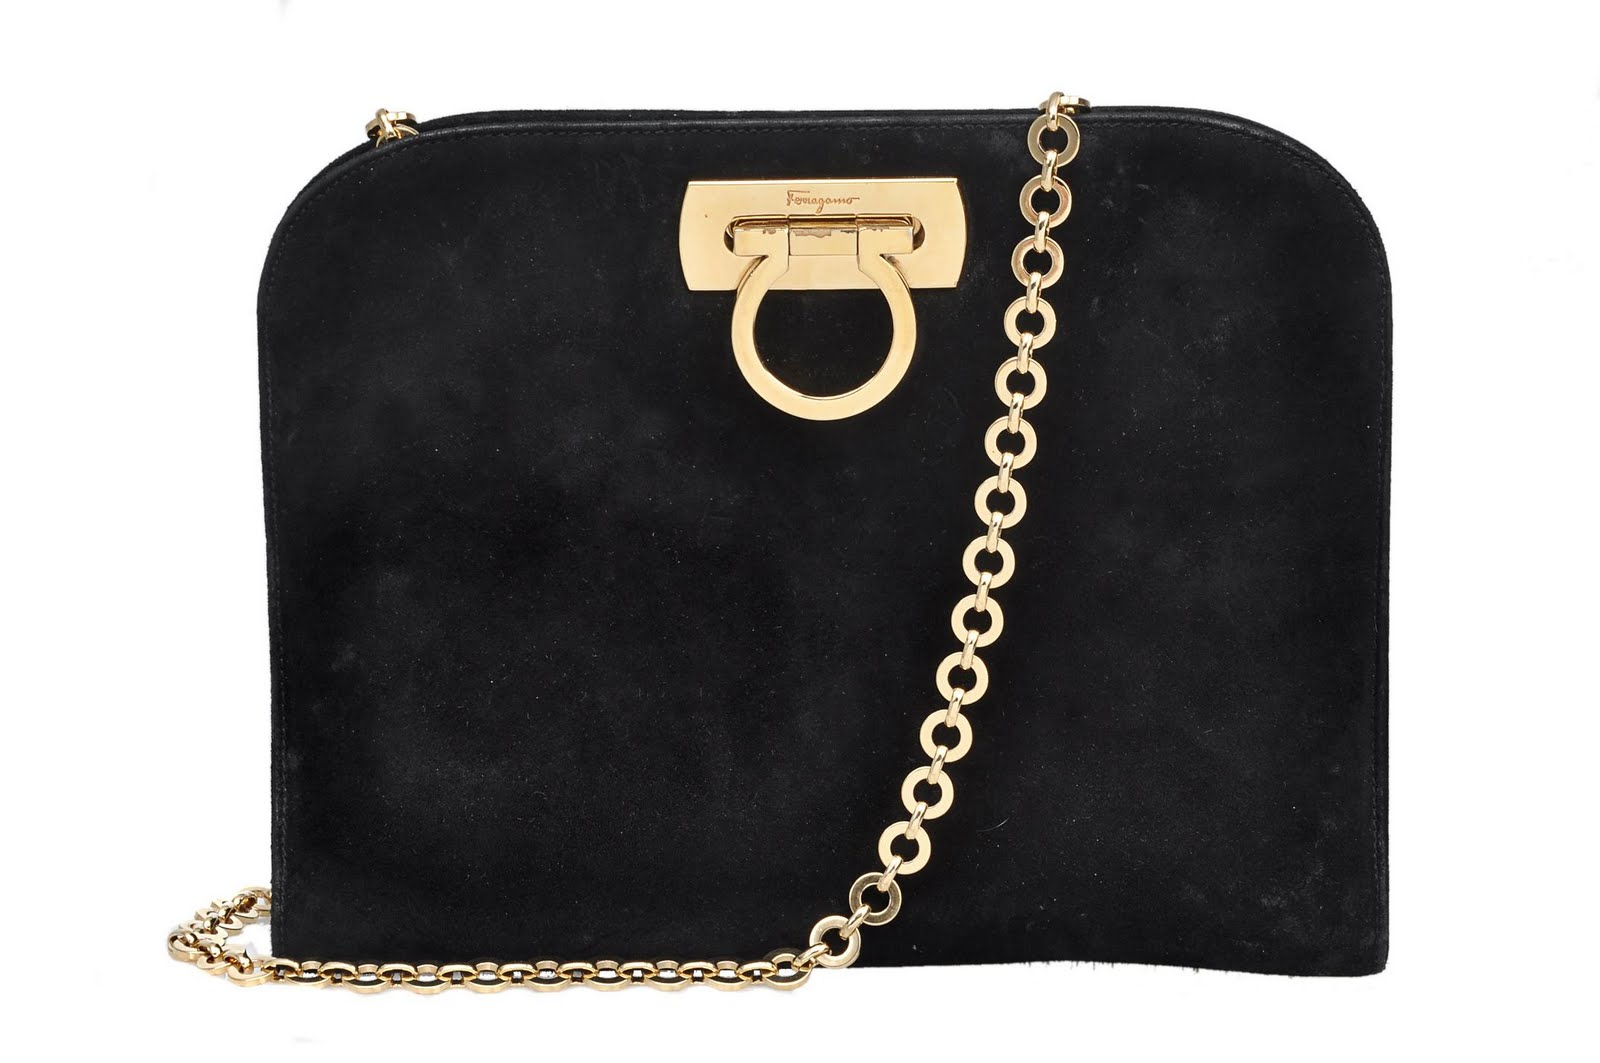 Salvatore Ferragamo Black Suede Gold Hardware Clutch Shoulder Bag